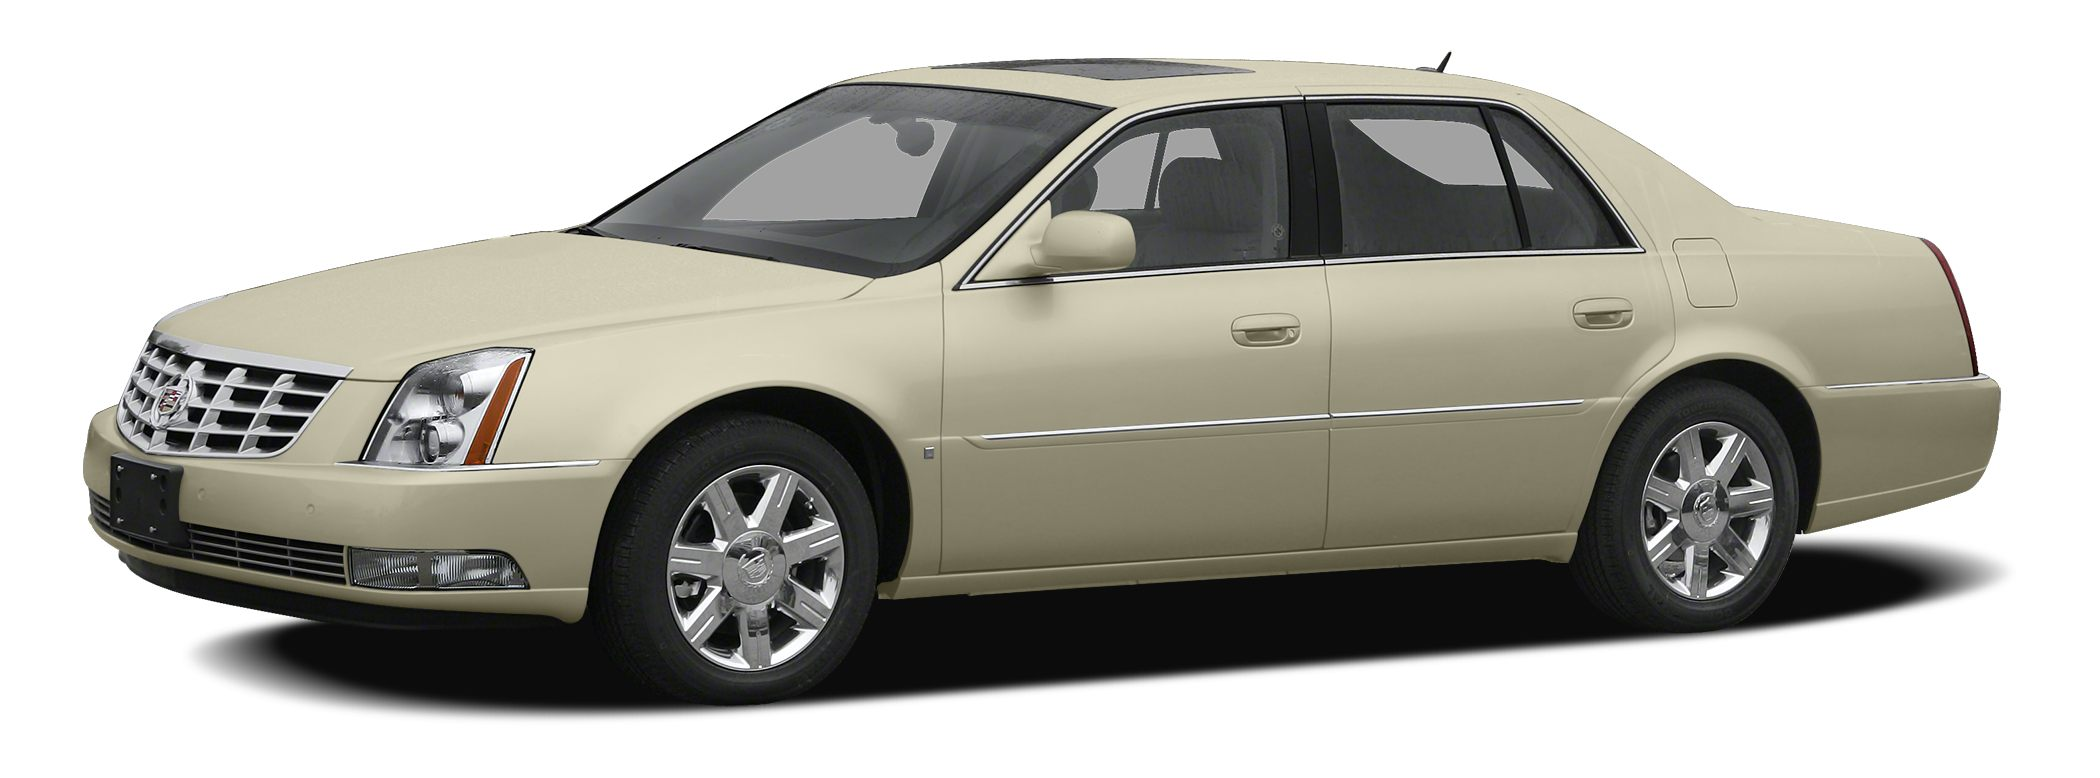 2011 Cadillac DTS Premium Dont miss this one its a 2011 Cadillac DTS Premium White Diamond